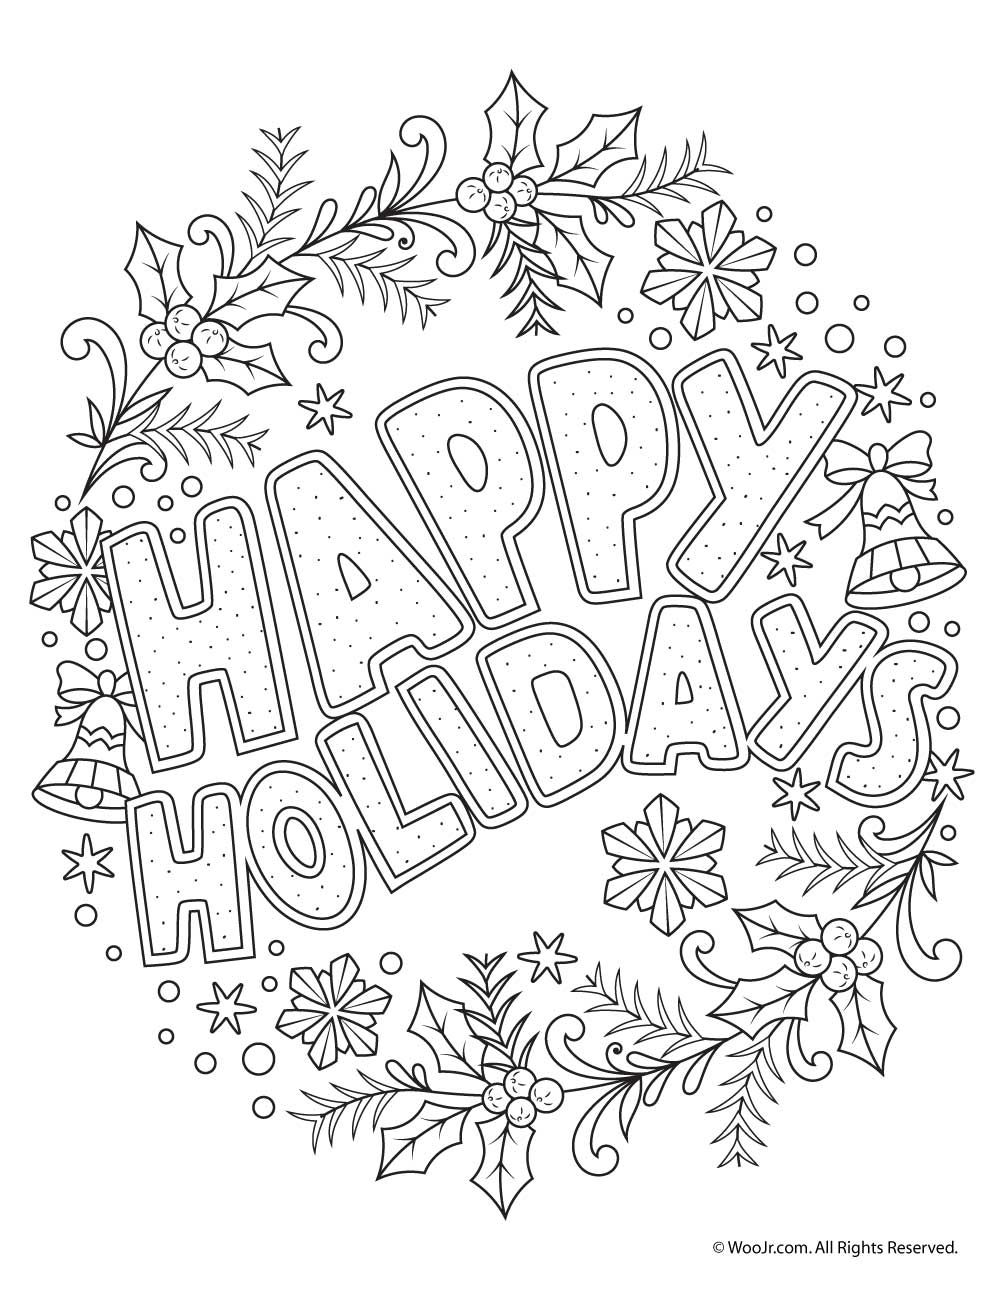 Happy Holidays Adult Coloring Freebie | holidays | Adult coloring ...